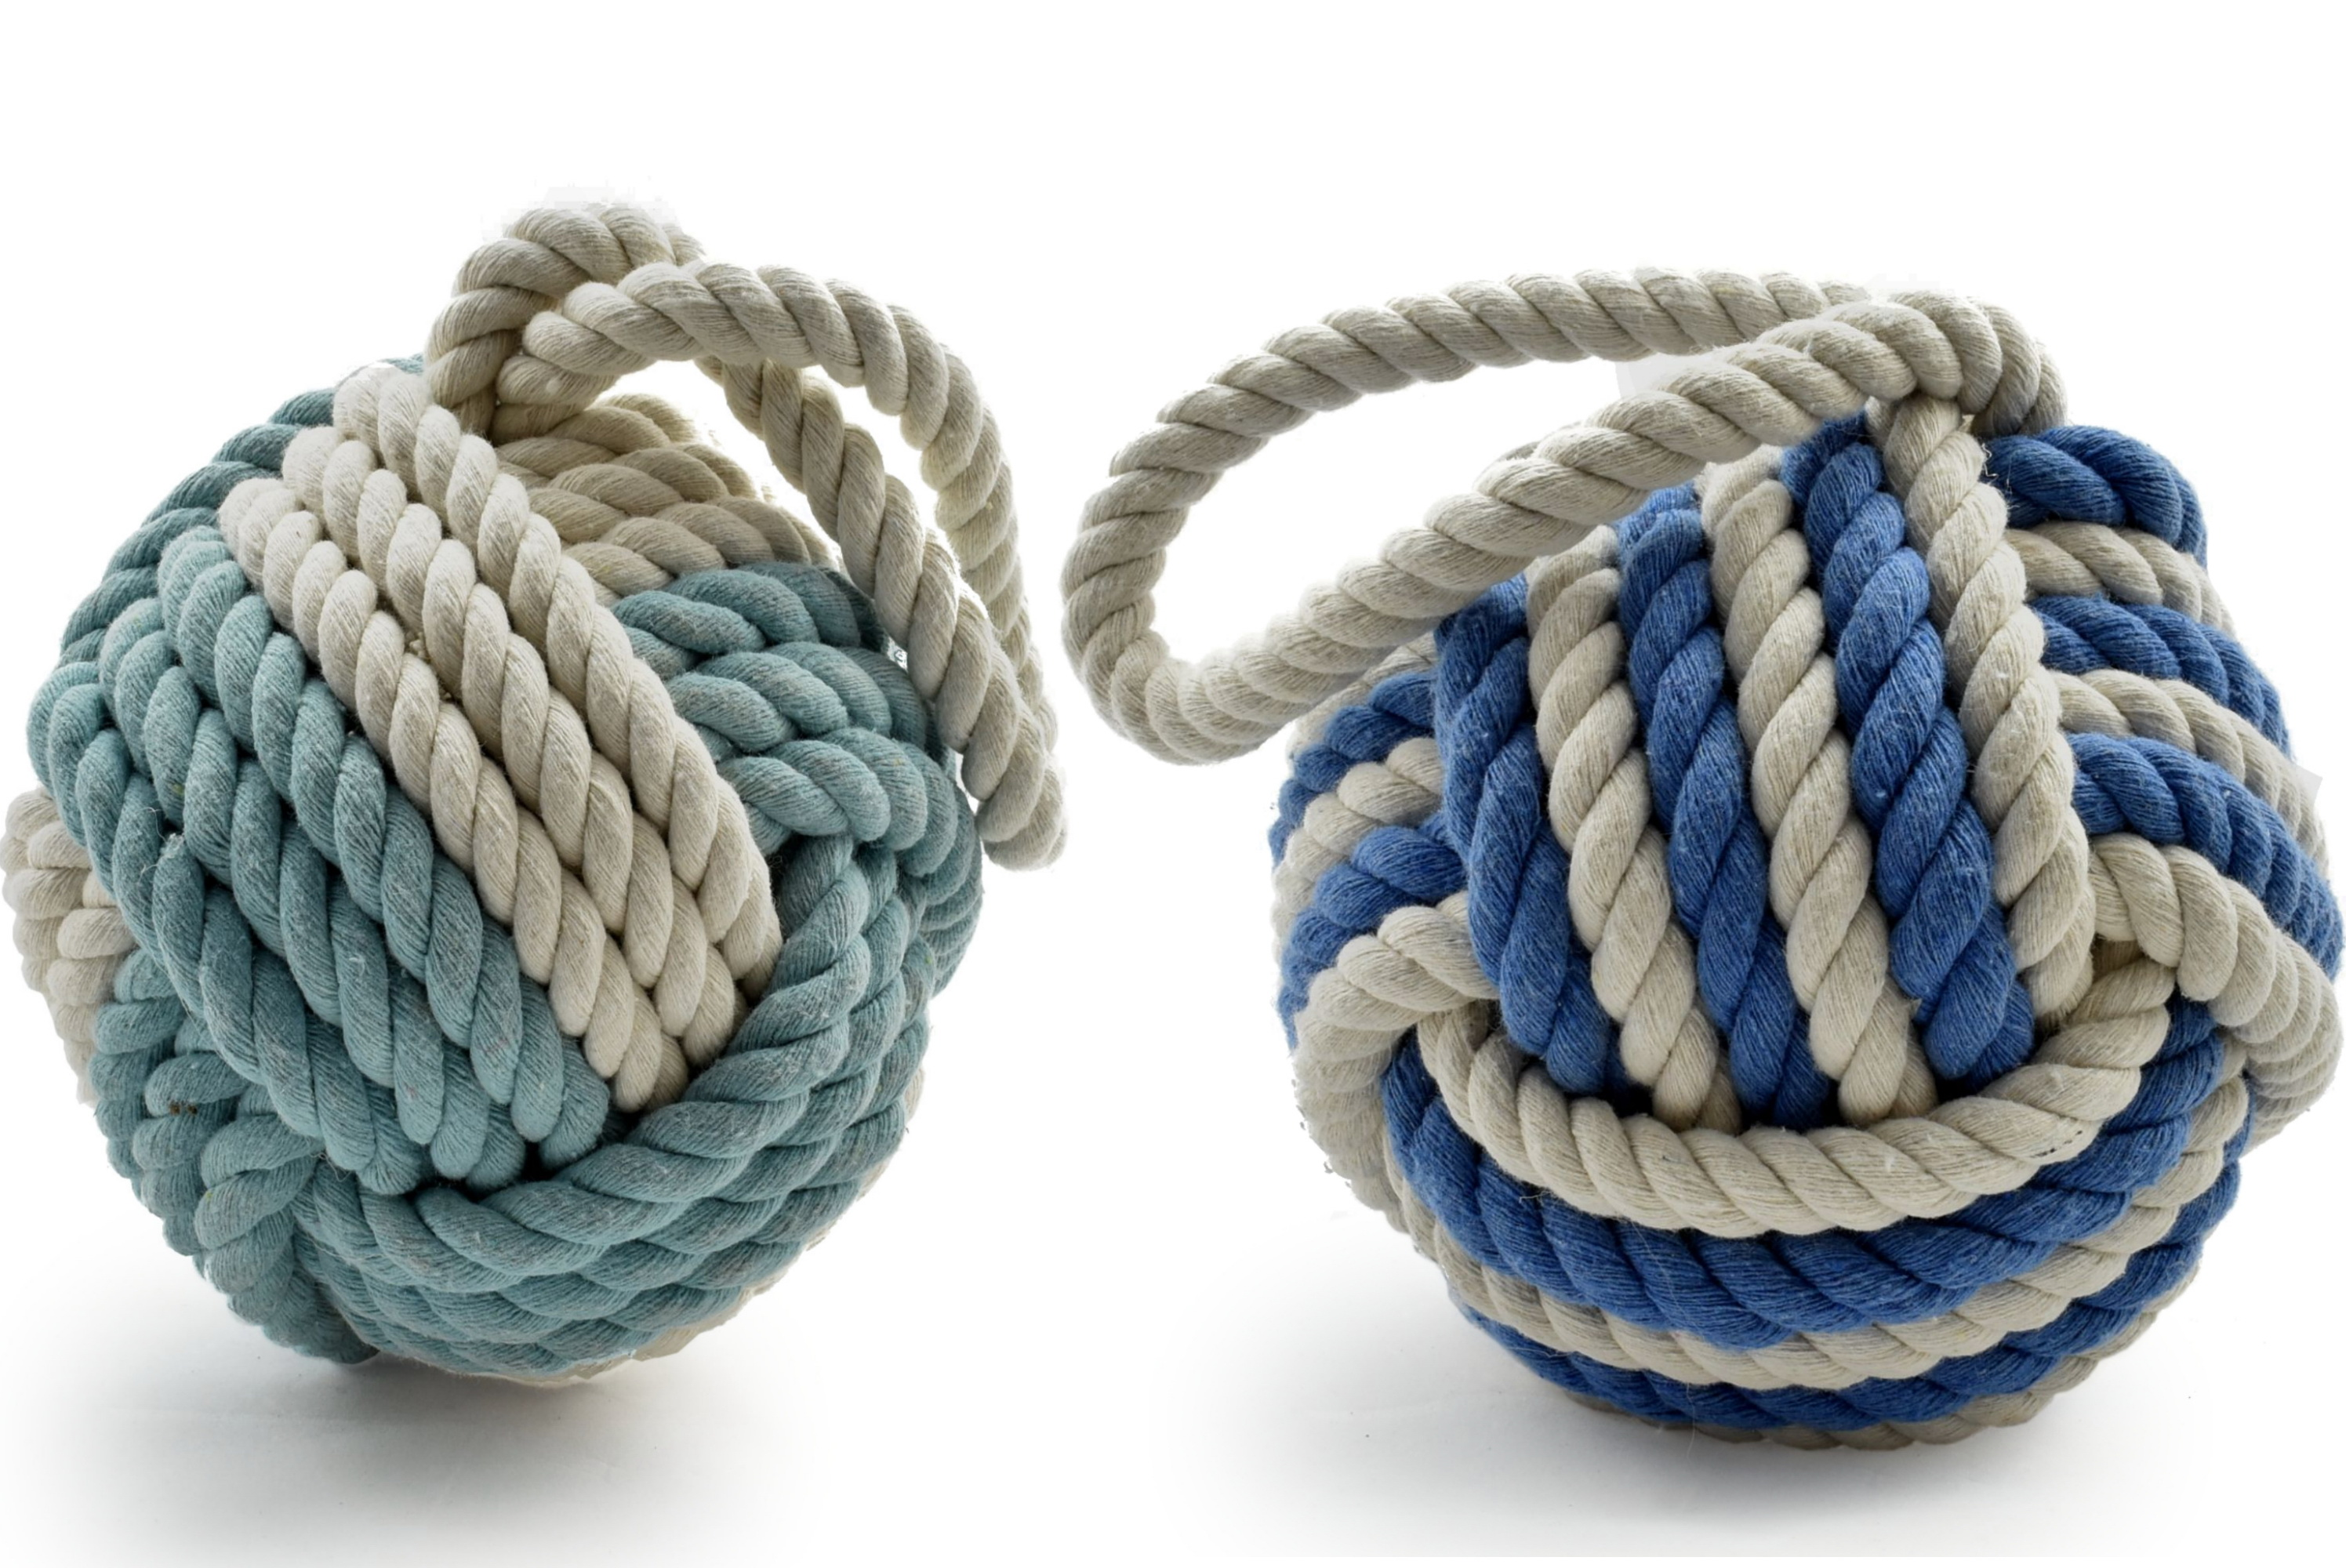 16cm 2 Tone Rope Door Stop 2 Assorted